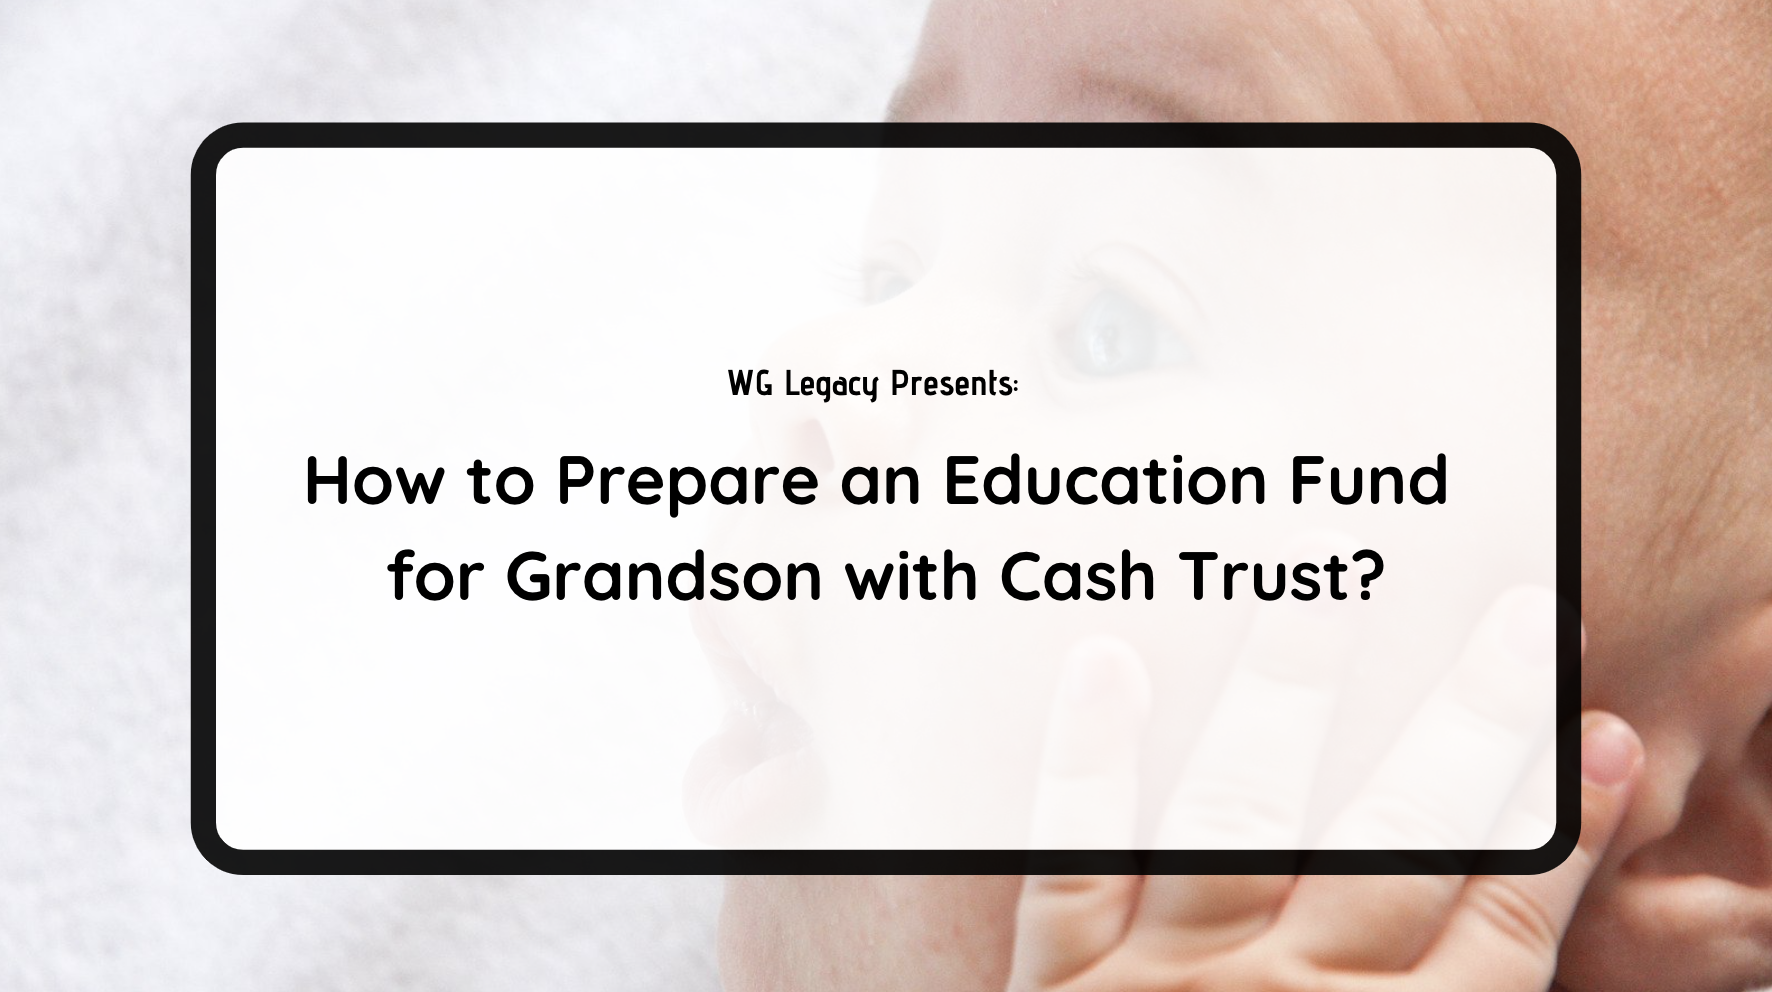 How to Prepare an Education Fund for Grandson with Cash Trust?